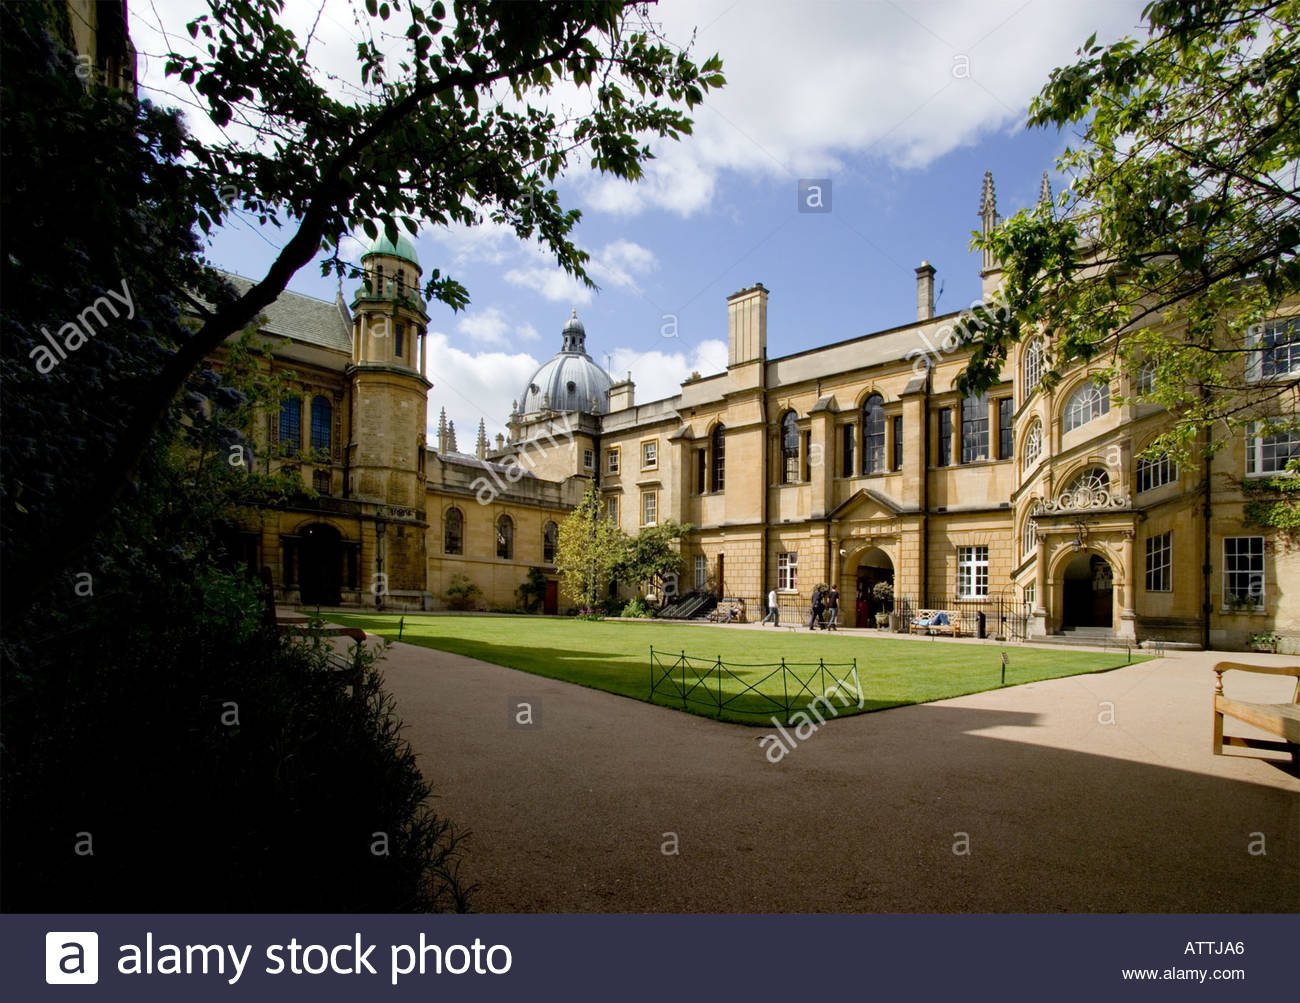 Hertford College, Oxford Stock Photo